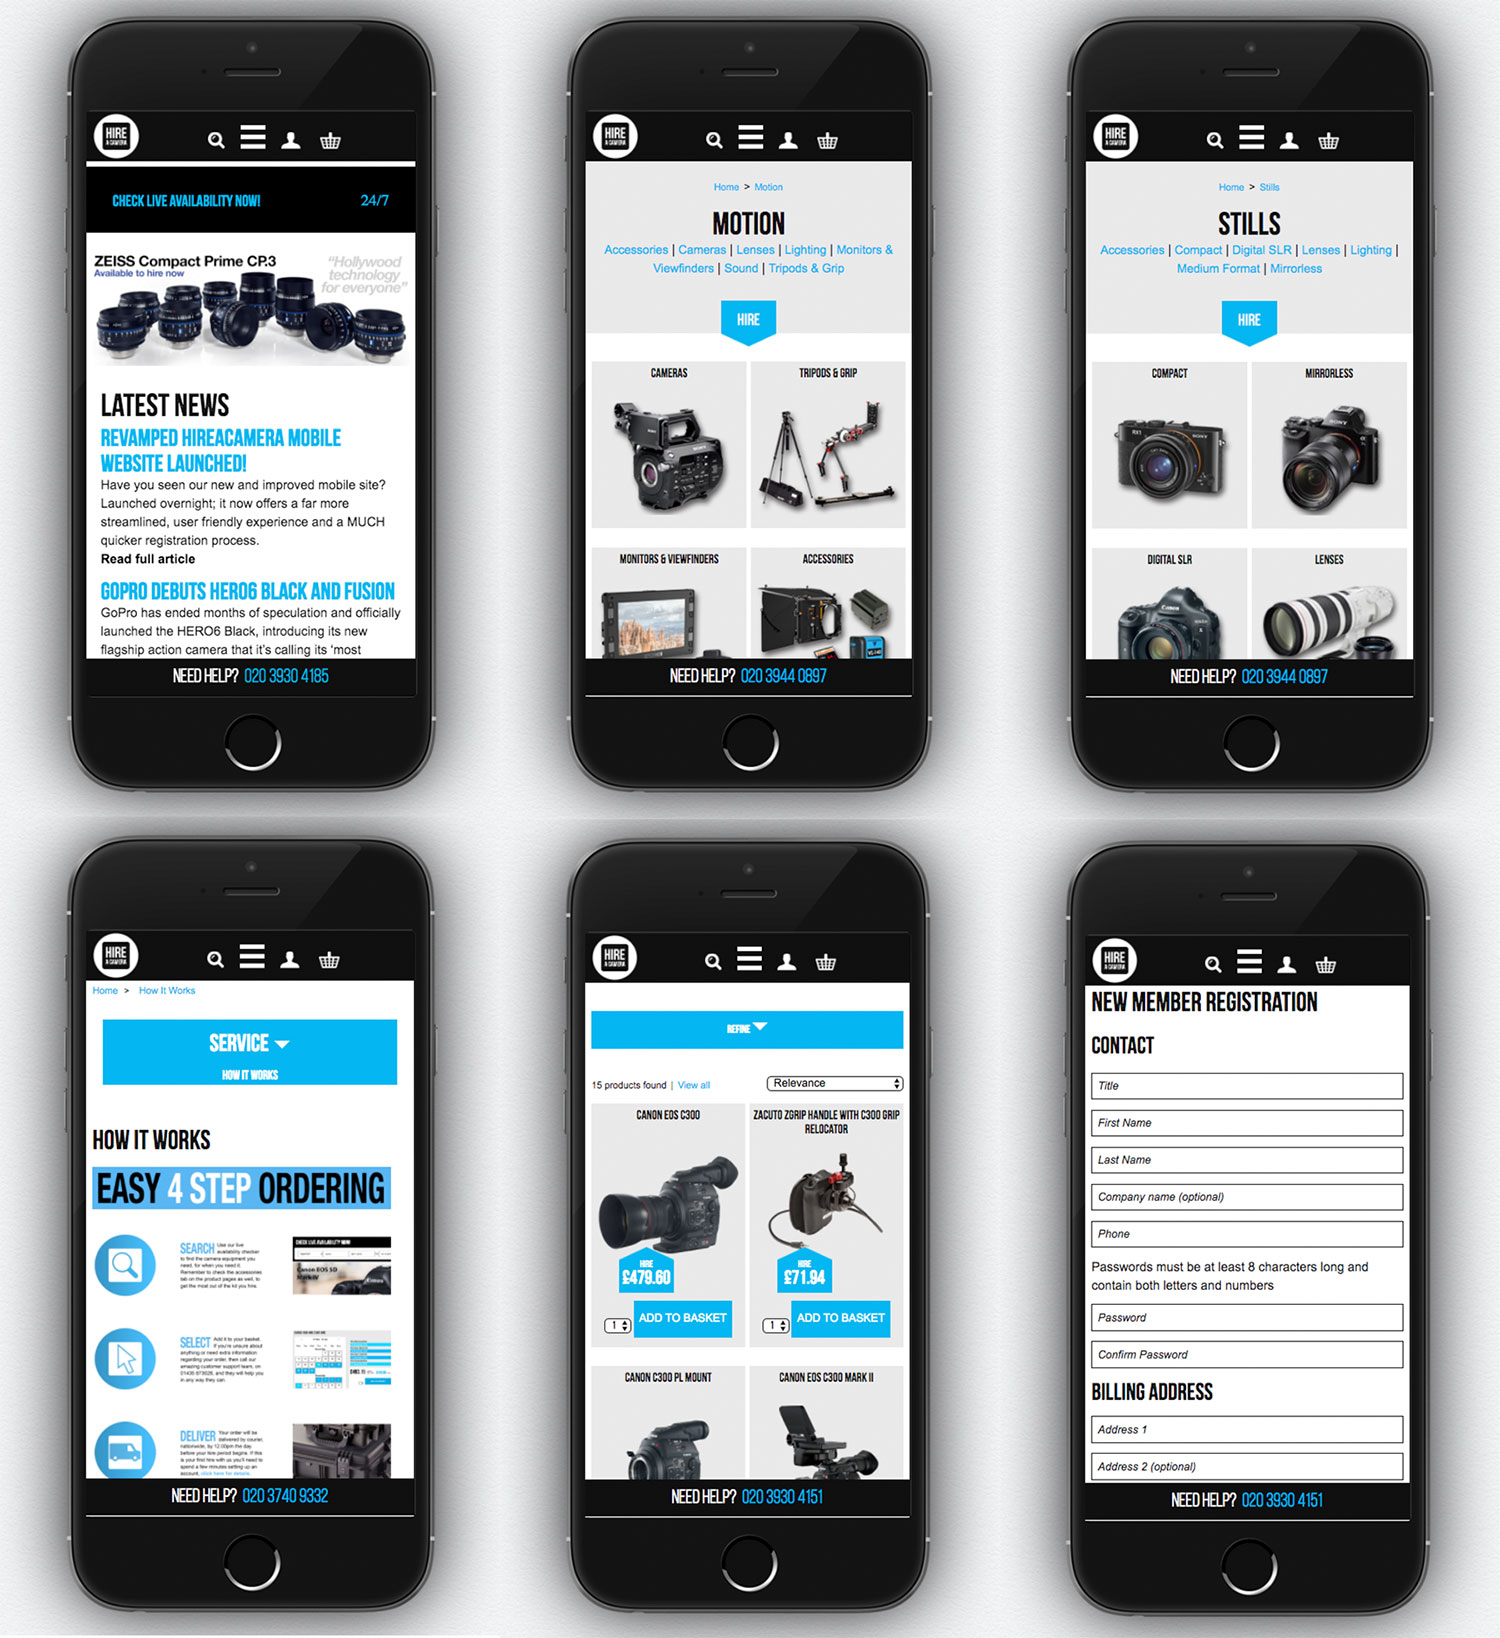 Revamped Hireacamera mobile site launched!